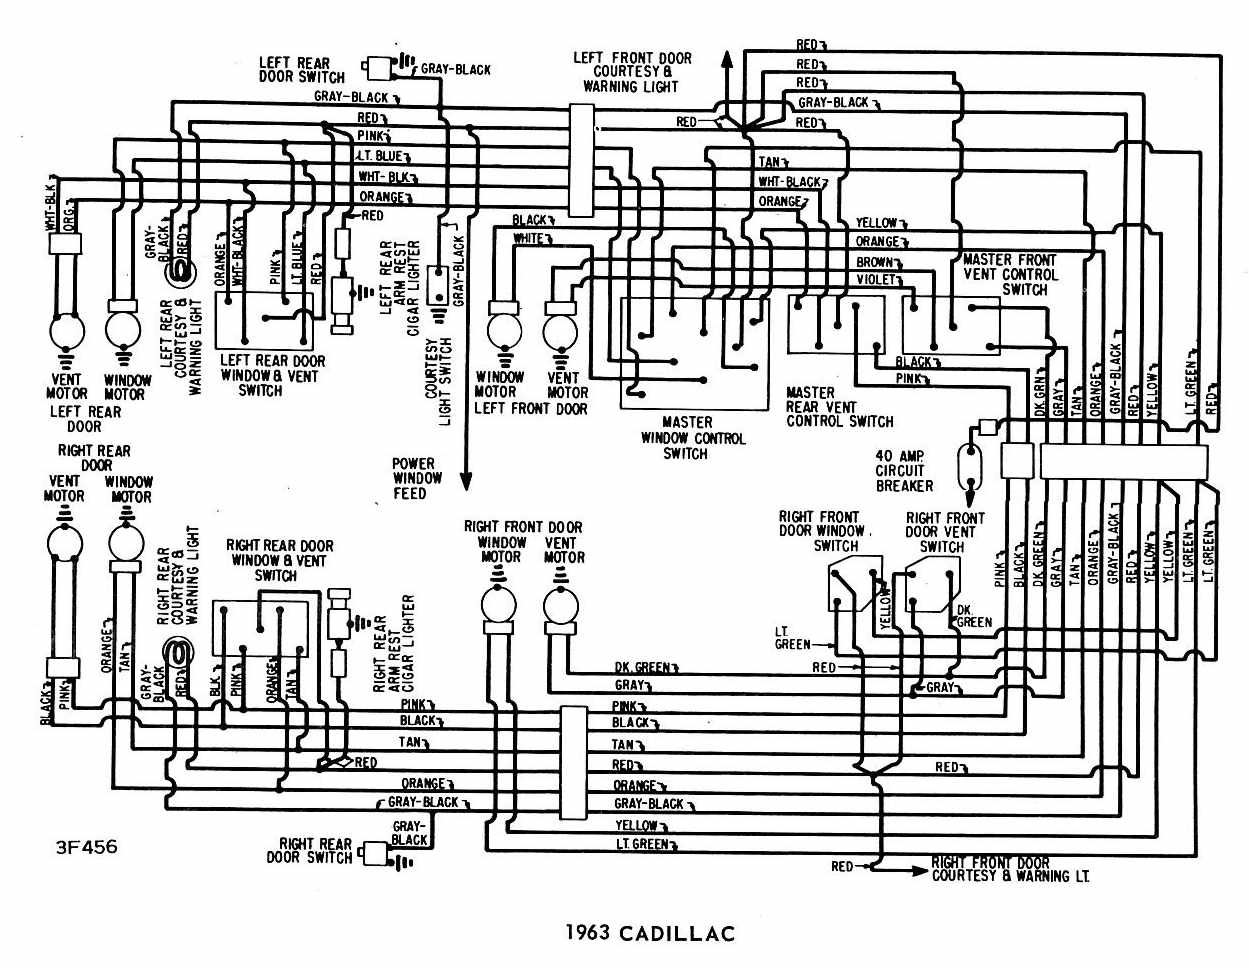 [QMVU_8575]  Cadillac Ac Wiring Diagram - Porsche 997 Headlight Wiring Diagram for Wiring  Diagram Schematics | Cadillac Wiring Diagram Free Download Schematic |  | segay-020.ecolechassiers.fr